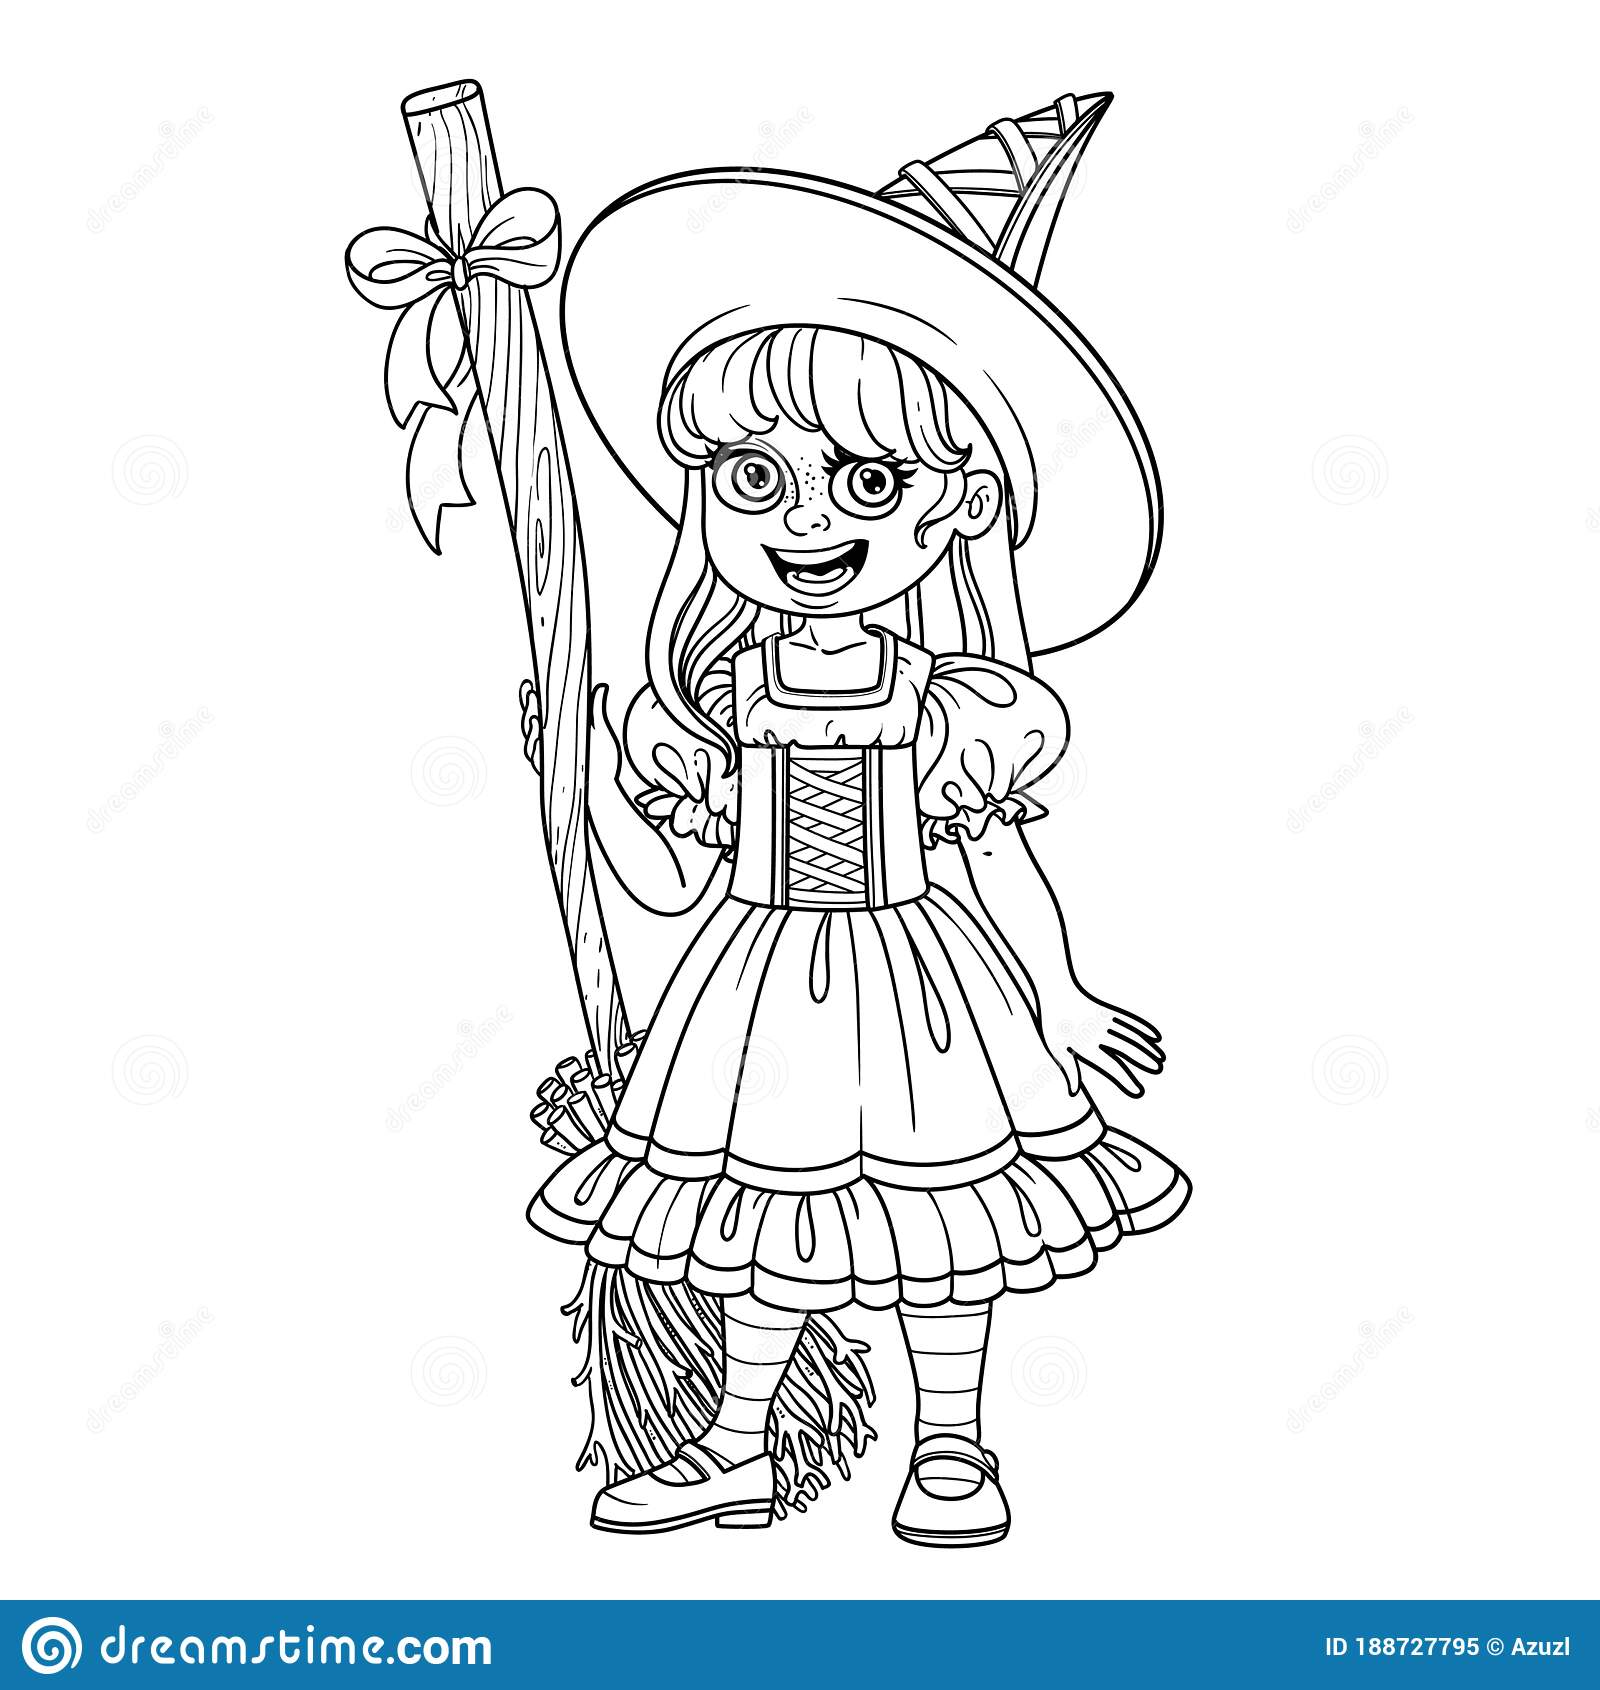 Cute Girl Coloring Page Stock Illustrations 4 514 Cute Girl Coloring Page Stock Illustrations Vectors Clipart Dreamstime